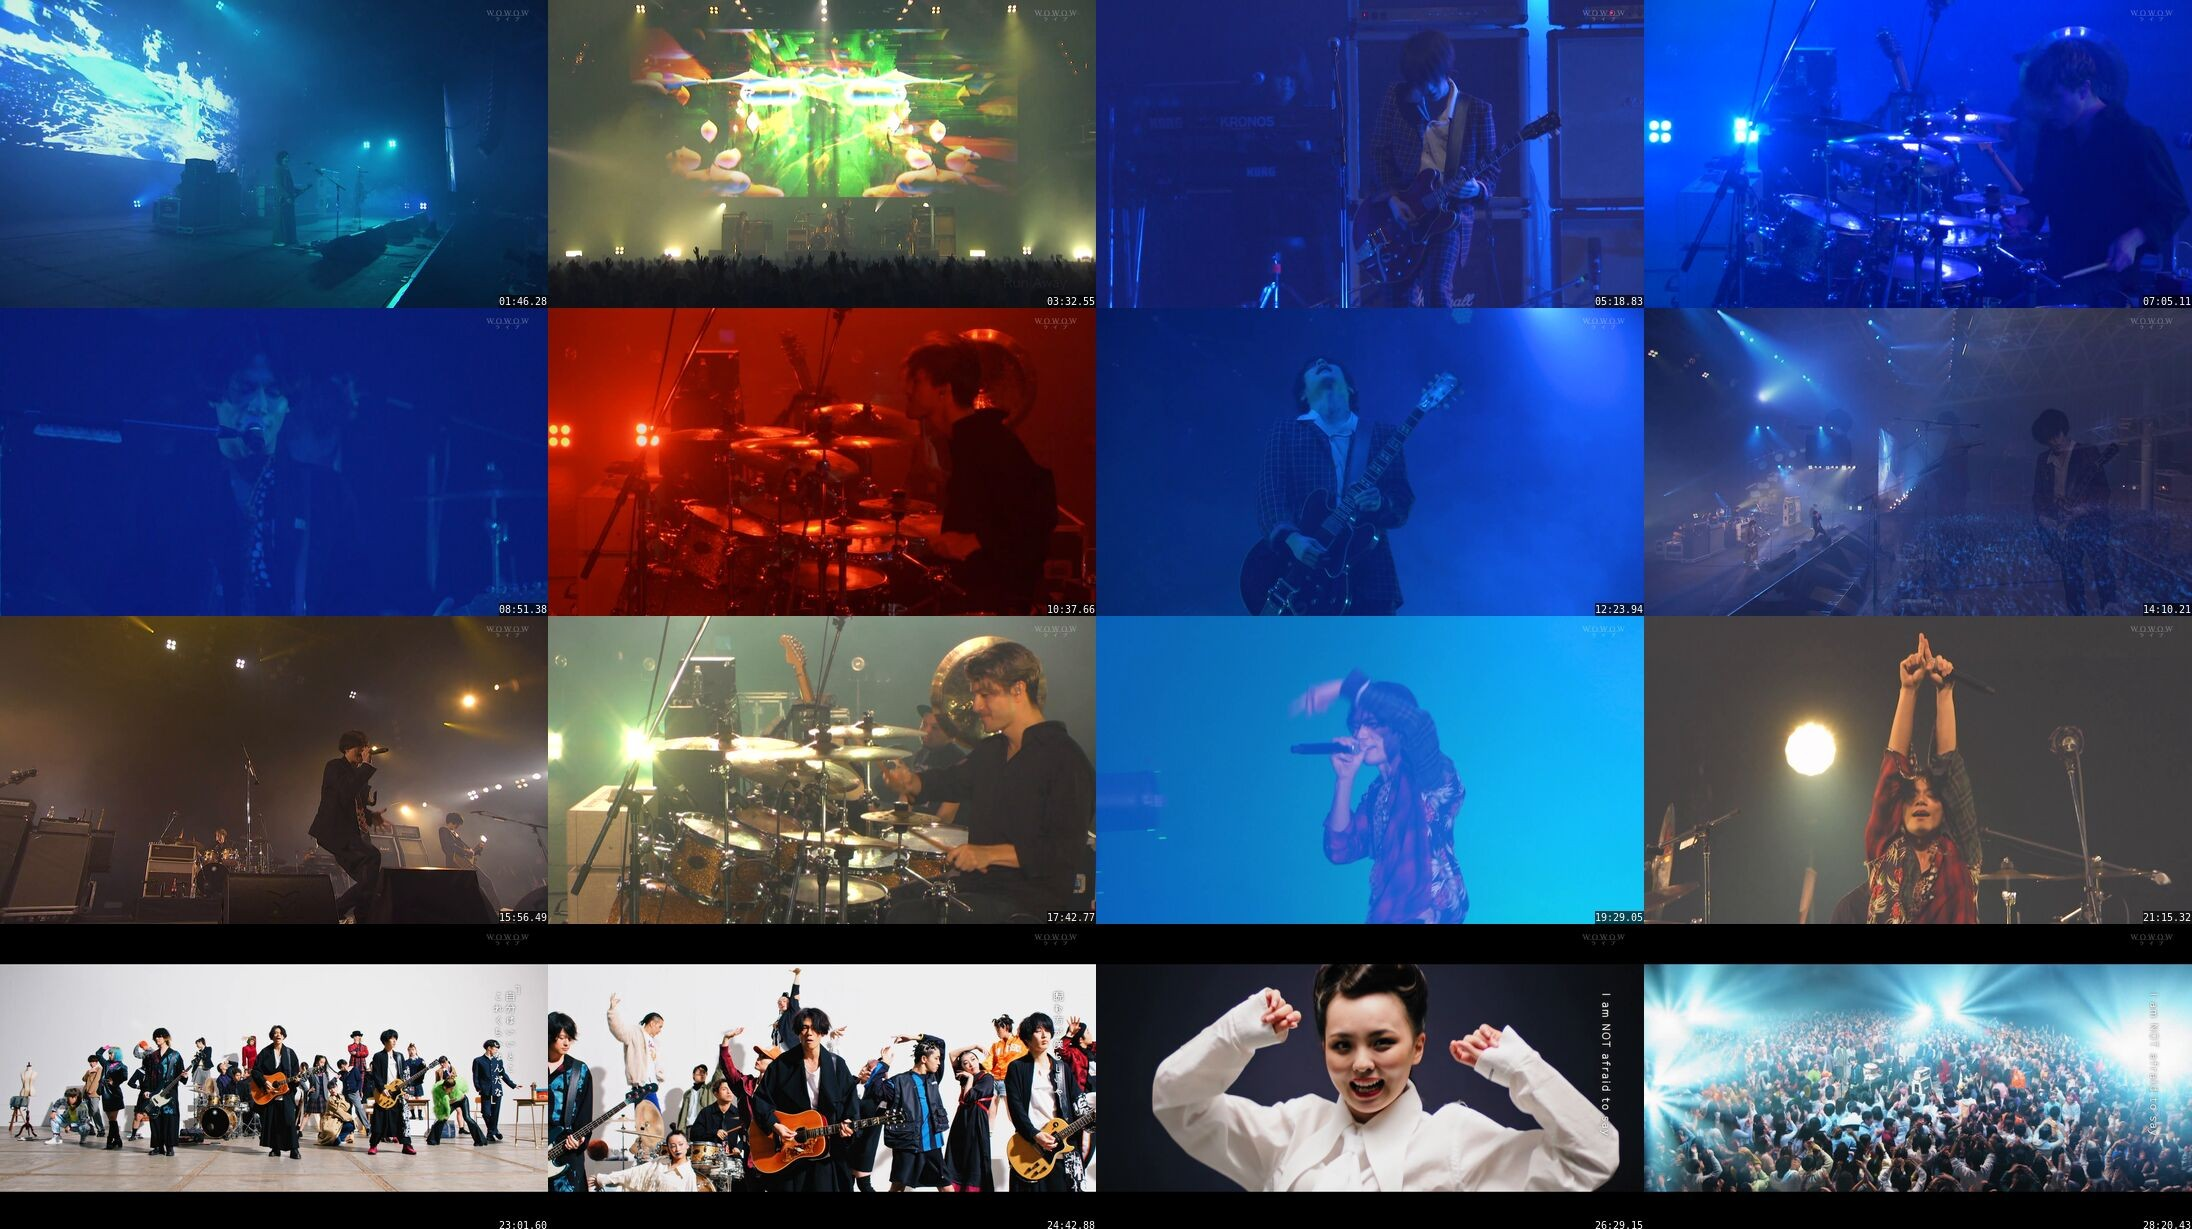 [ALEXANDROS] – COUNTDOWN JAPAN 19/20 Artist Special [ALEXANDROS] (WOWOW Live 2020.07.24)